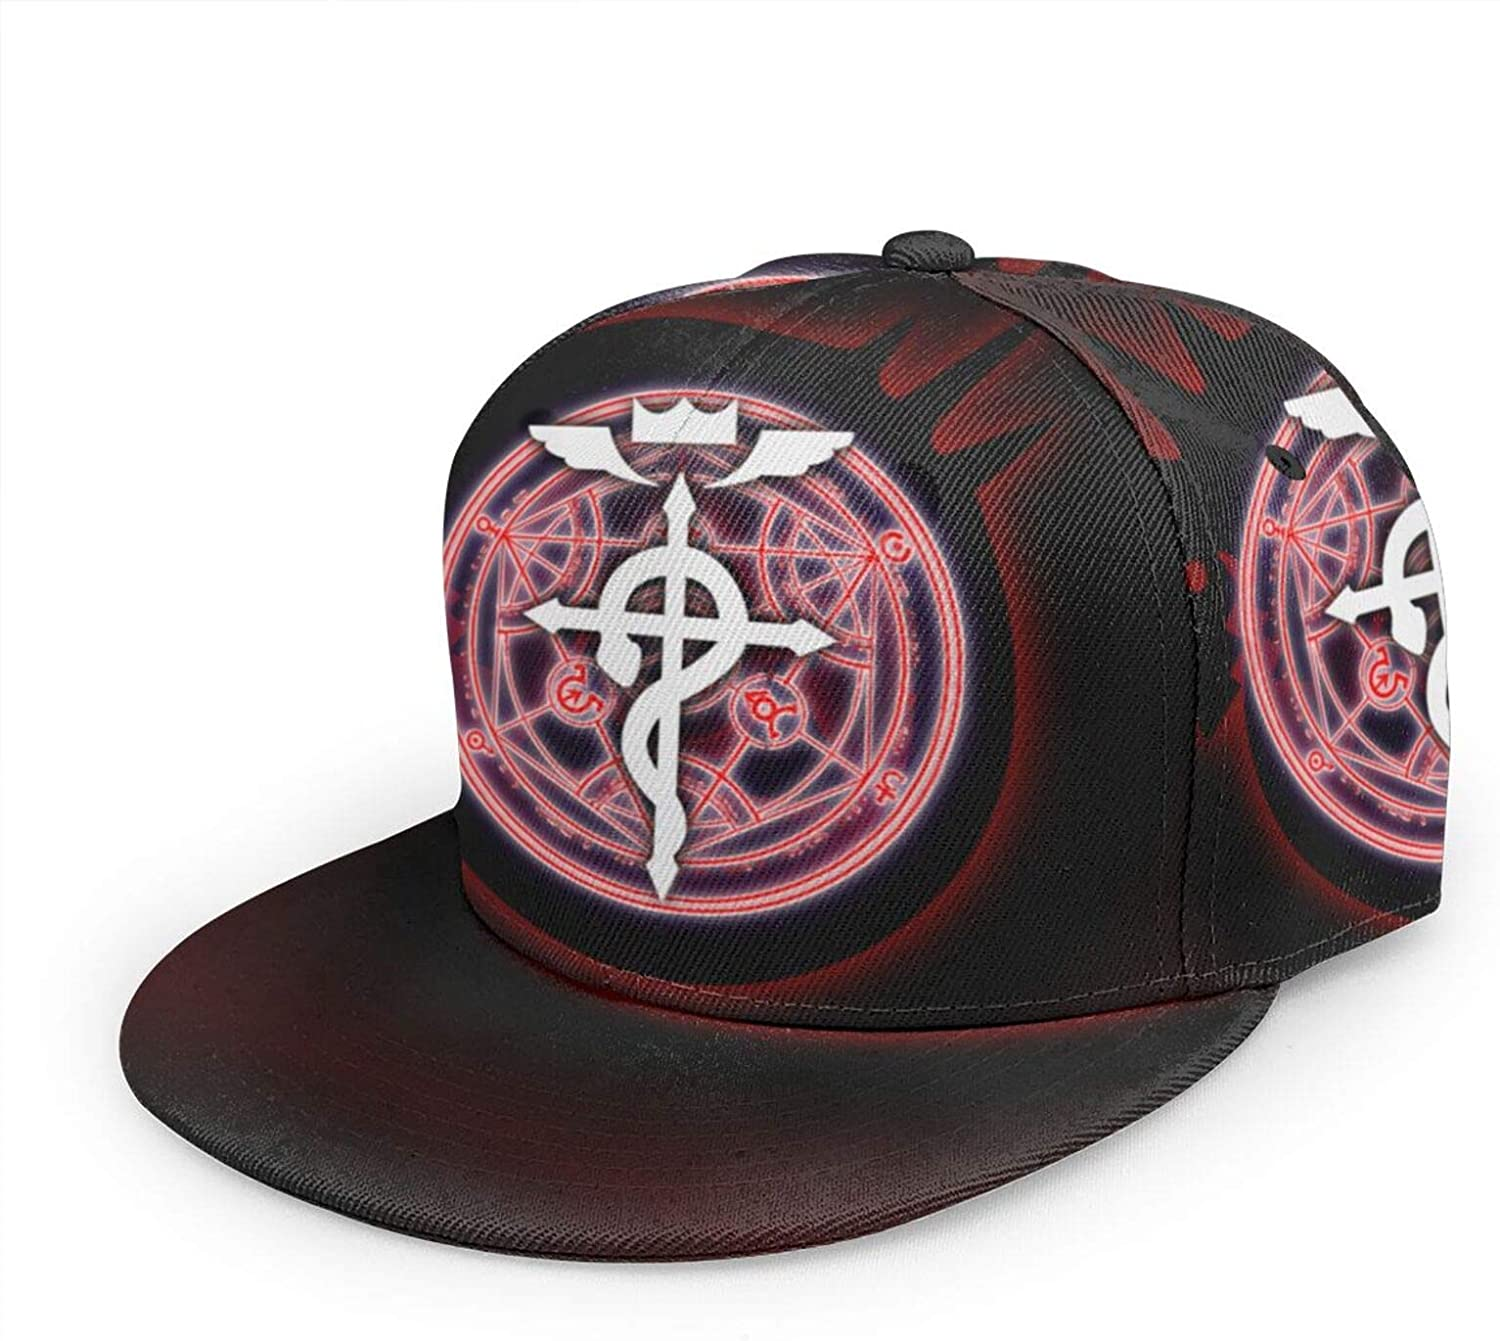 Anime Fullmetal Alchemist Baseball Cap,Men Solid Flat Bill Adjustable Snapback Hats Unisex,Perfect for Running Workouts and Outdoor Activities Black